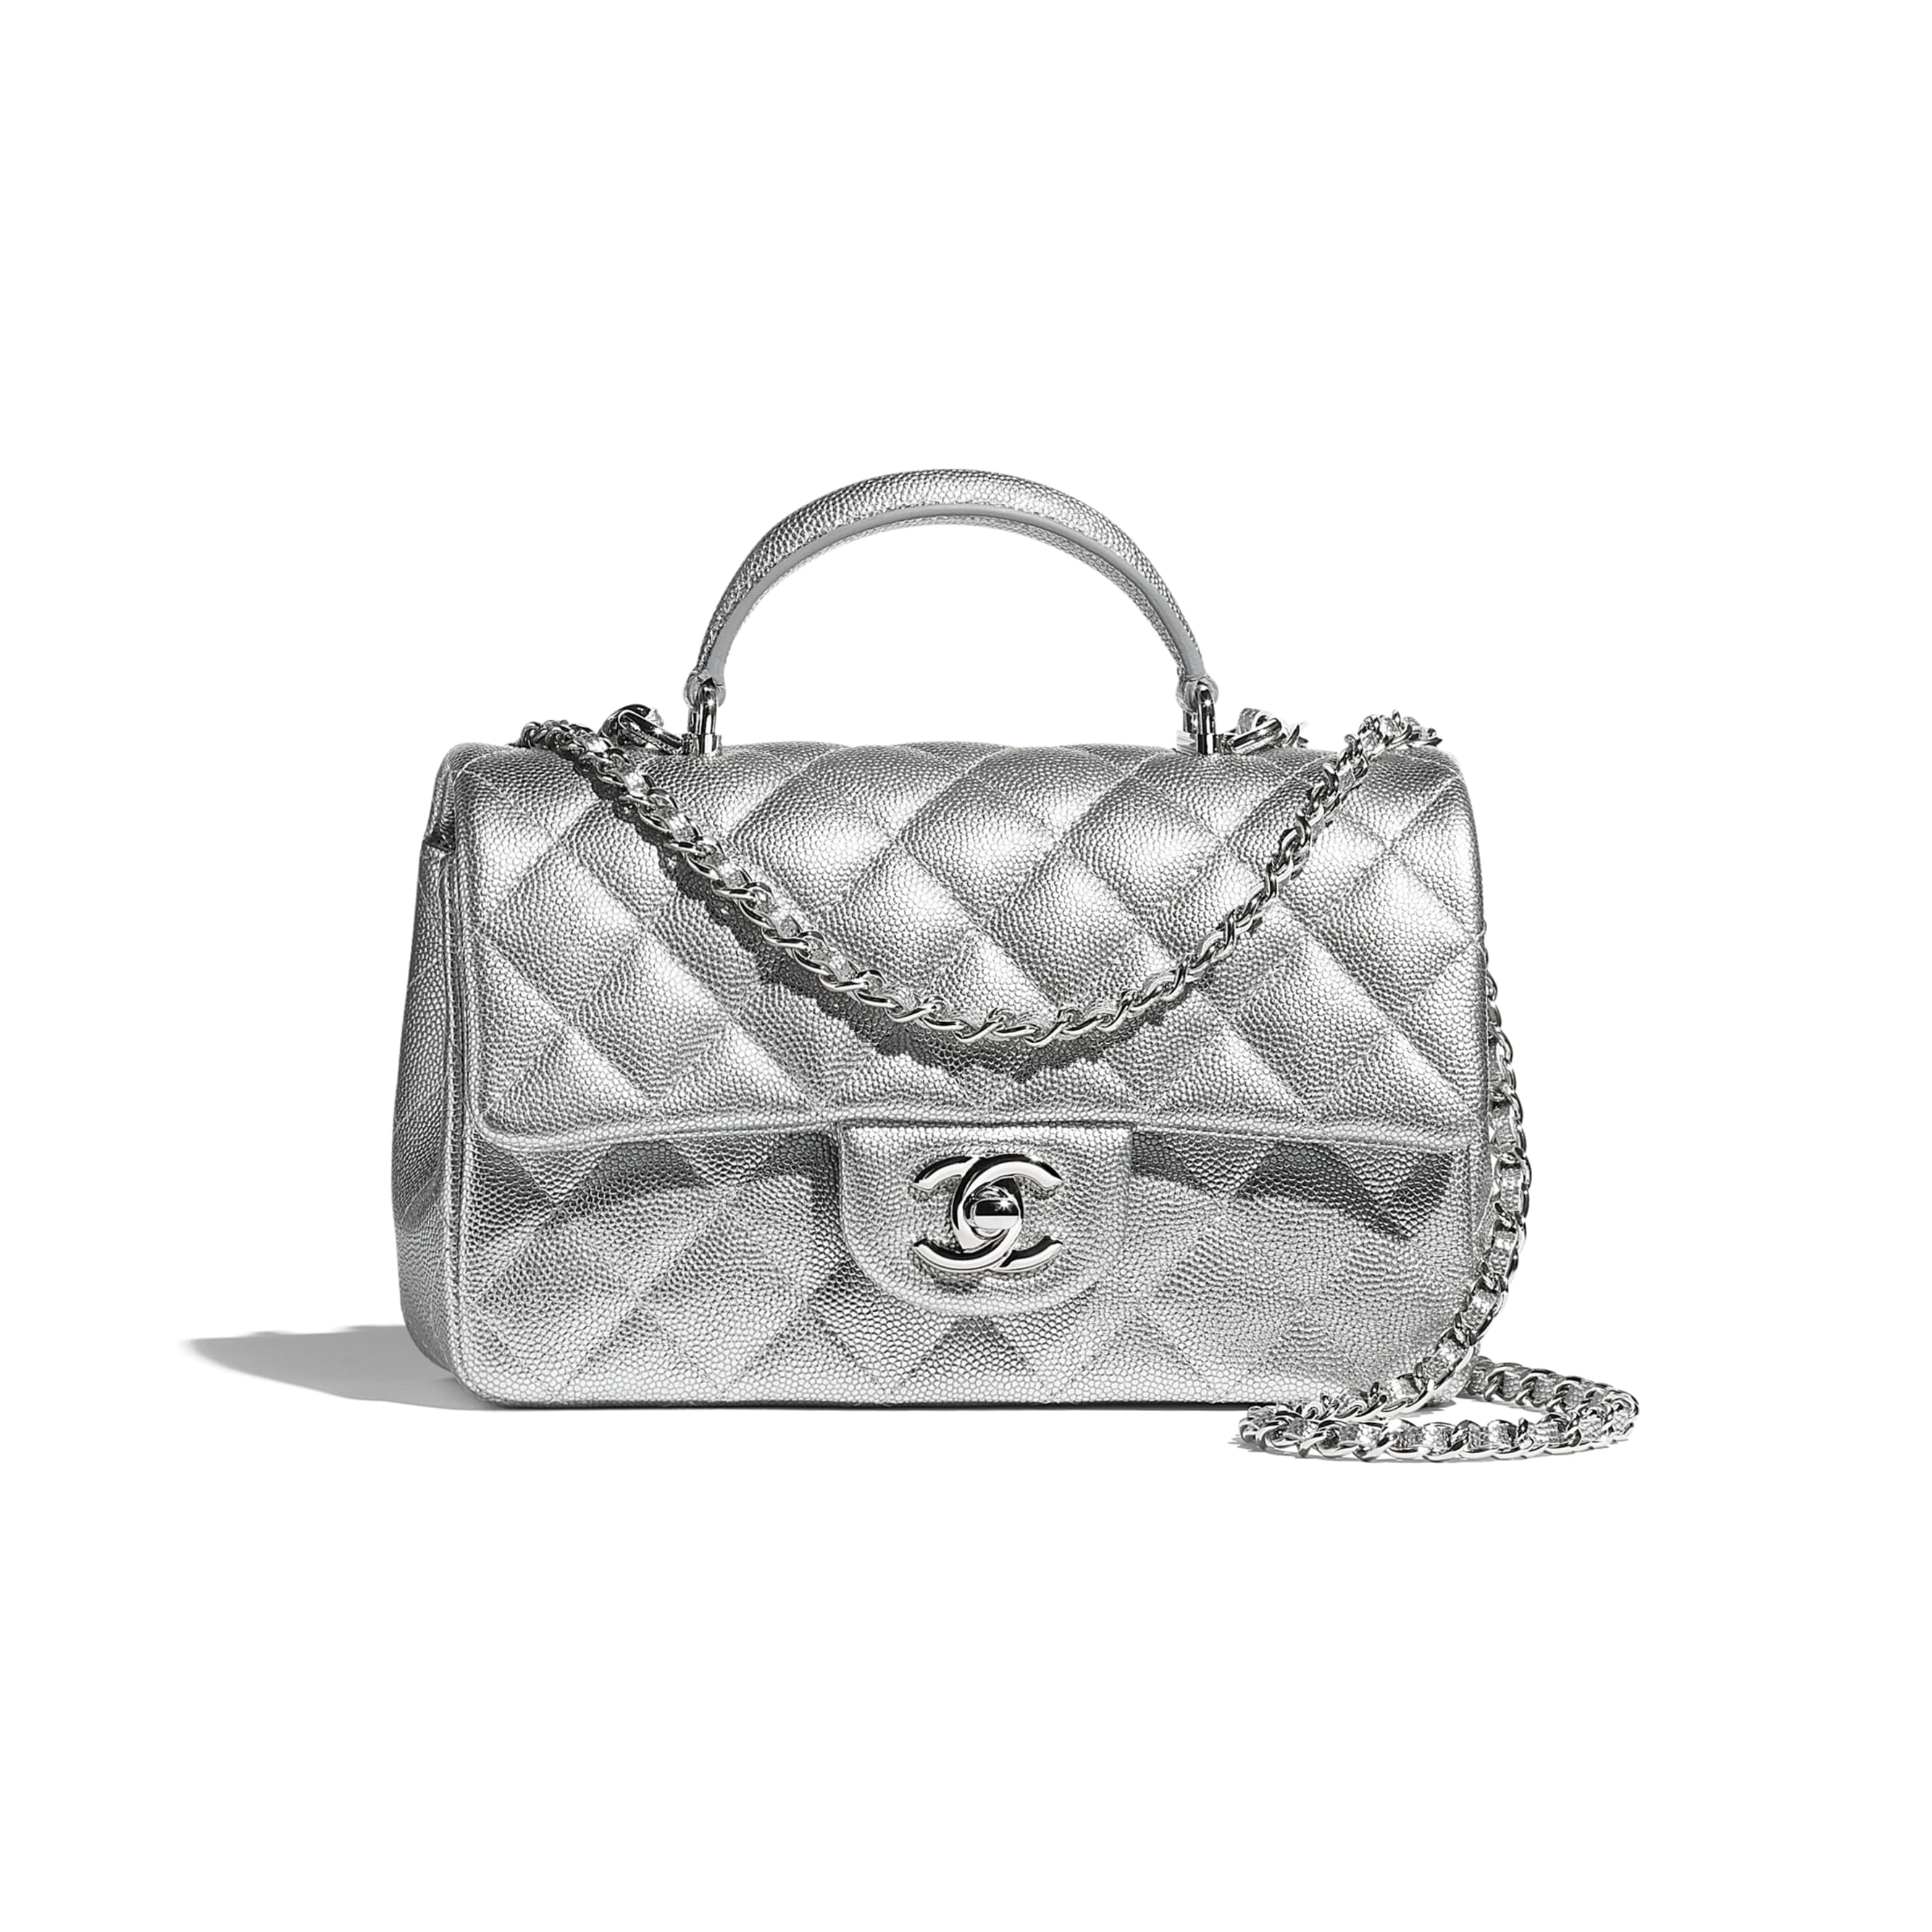 Mini Flap Bag with Top Handle - Silver - Metallic Grained Calfskin & Silver-Tone Metal - CHANEL - Default view - see standard sized version